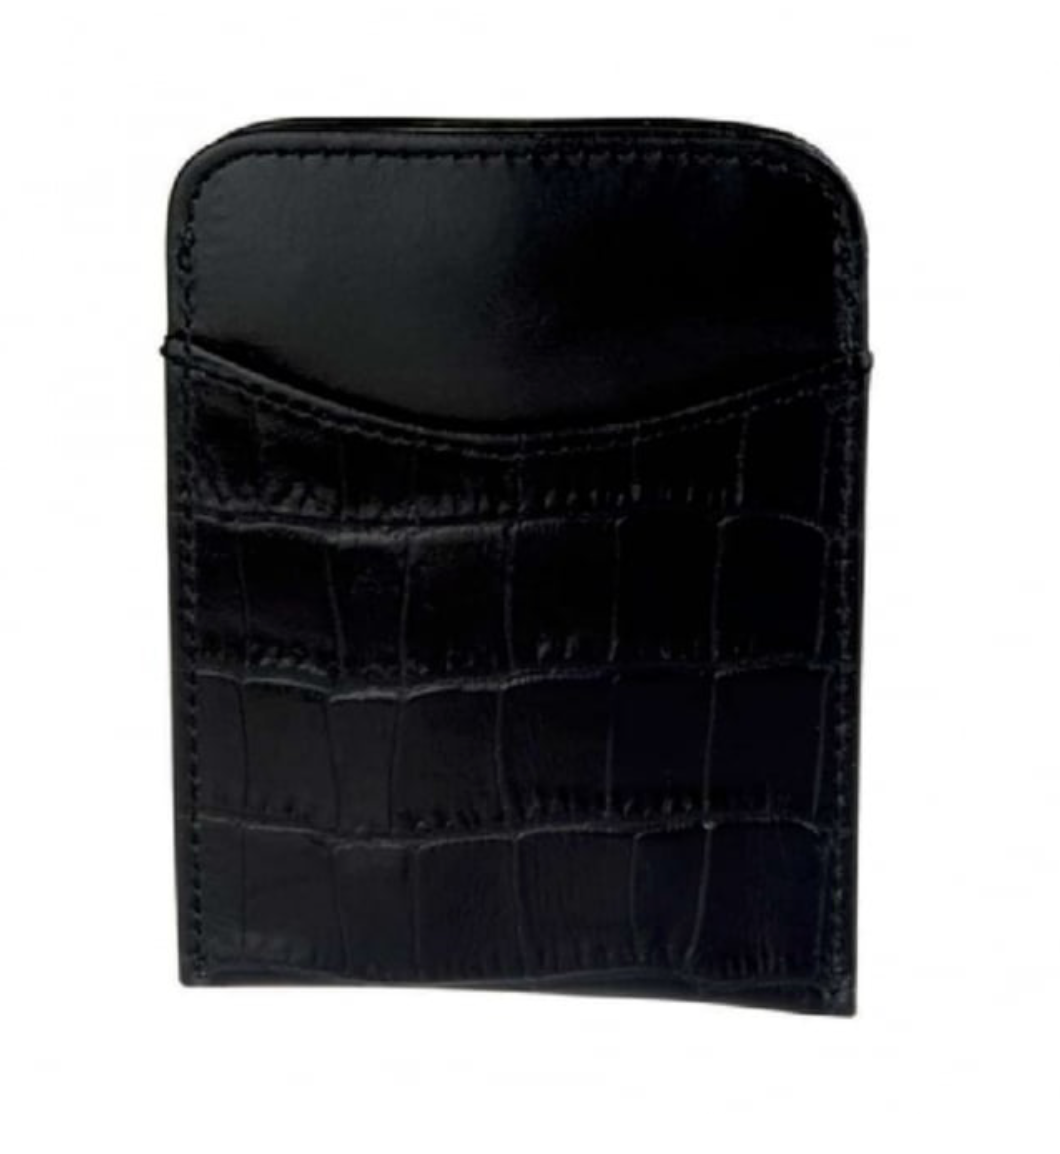 Jos Von Arx Evening Wallet -Black